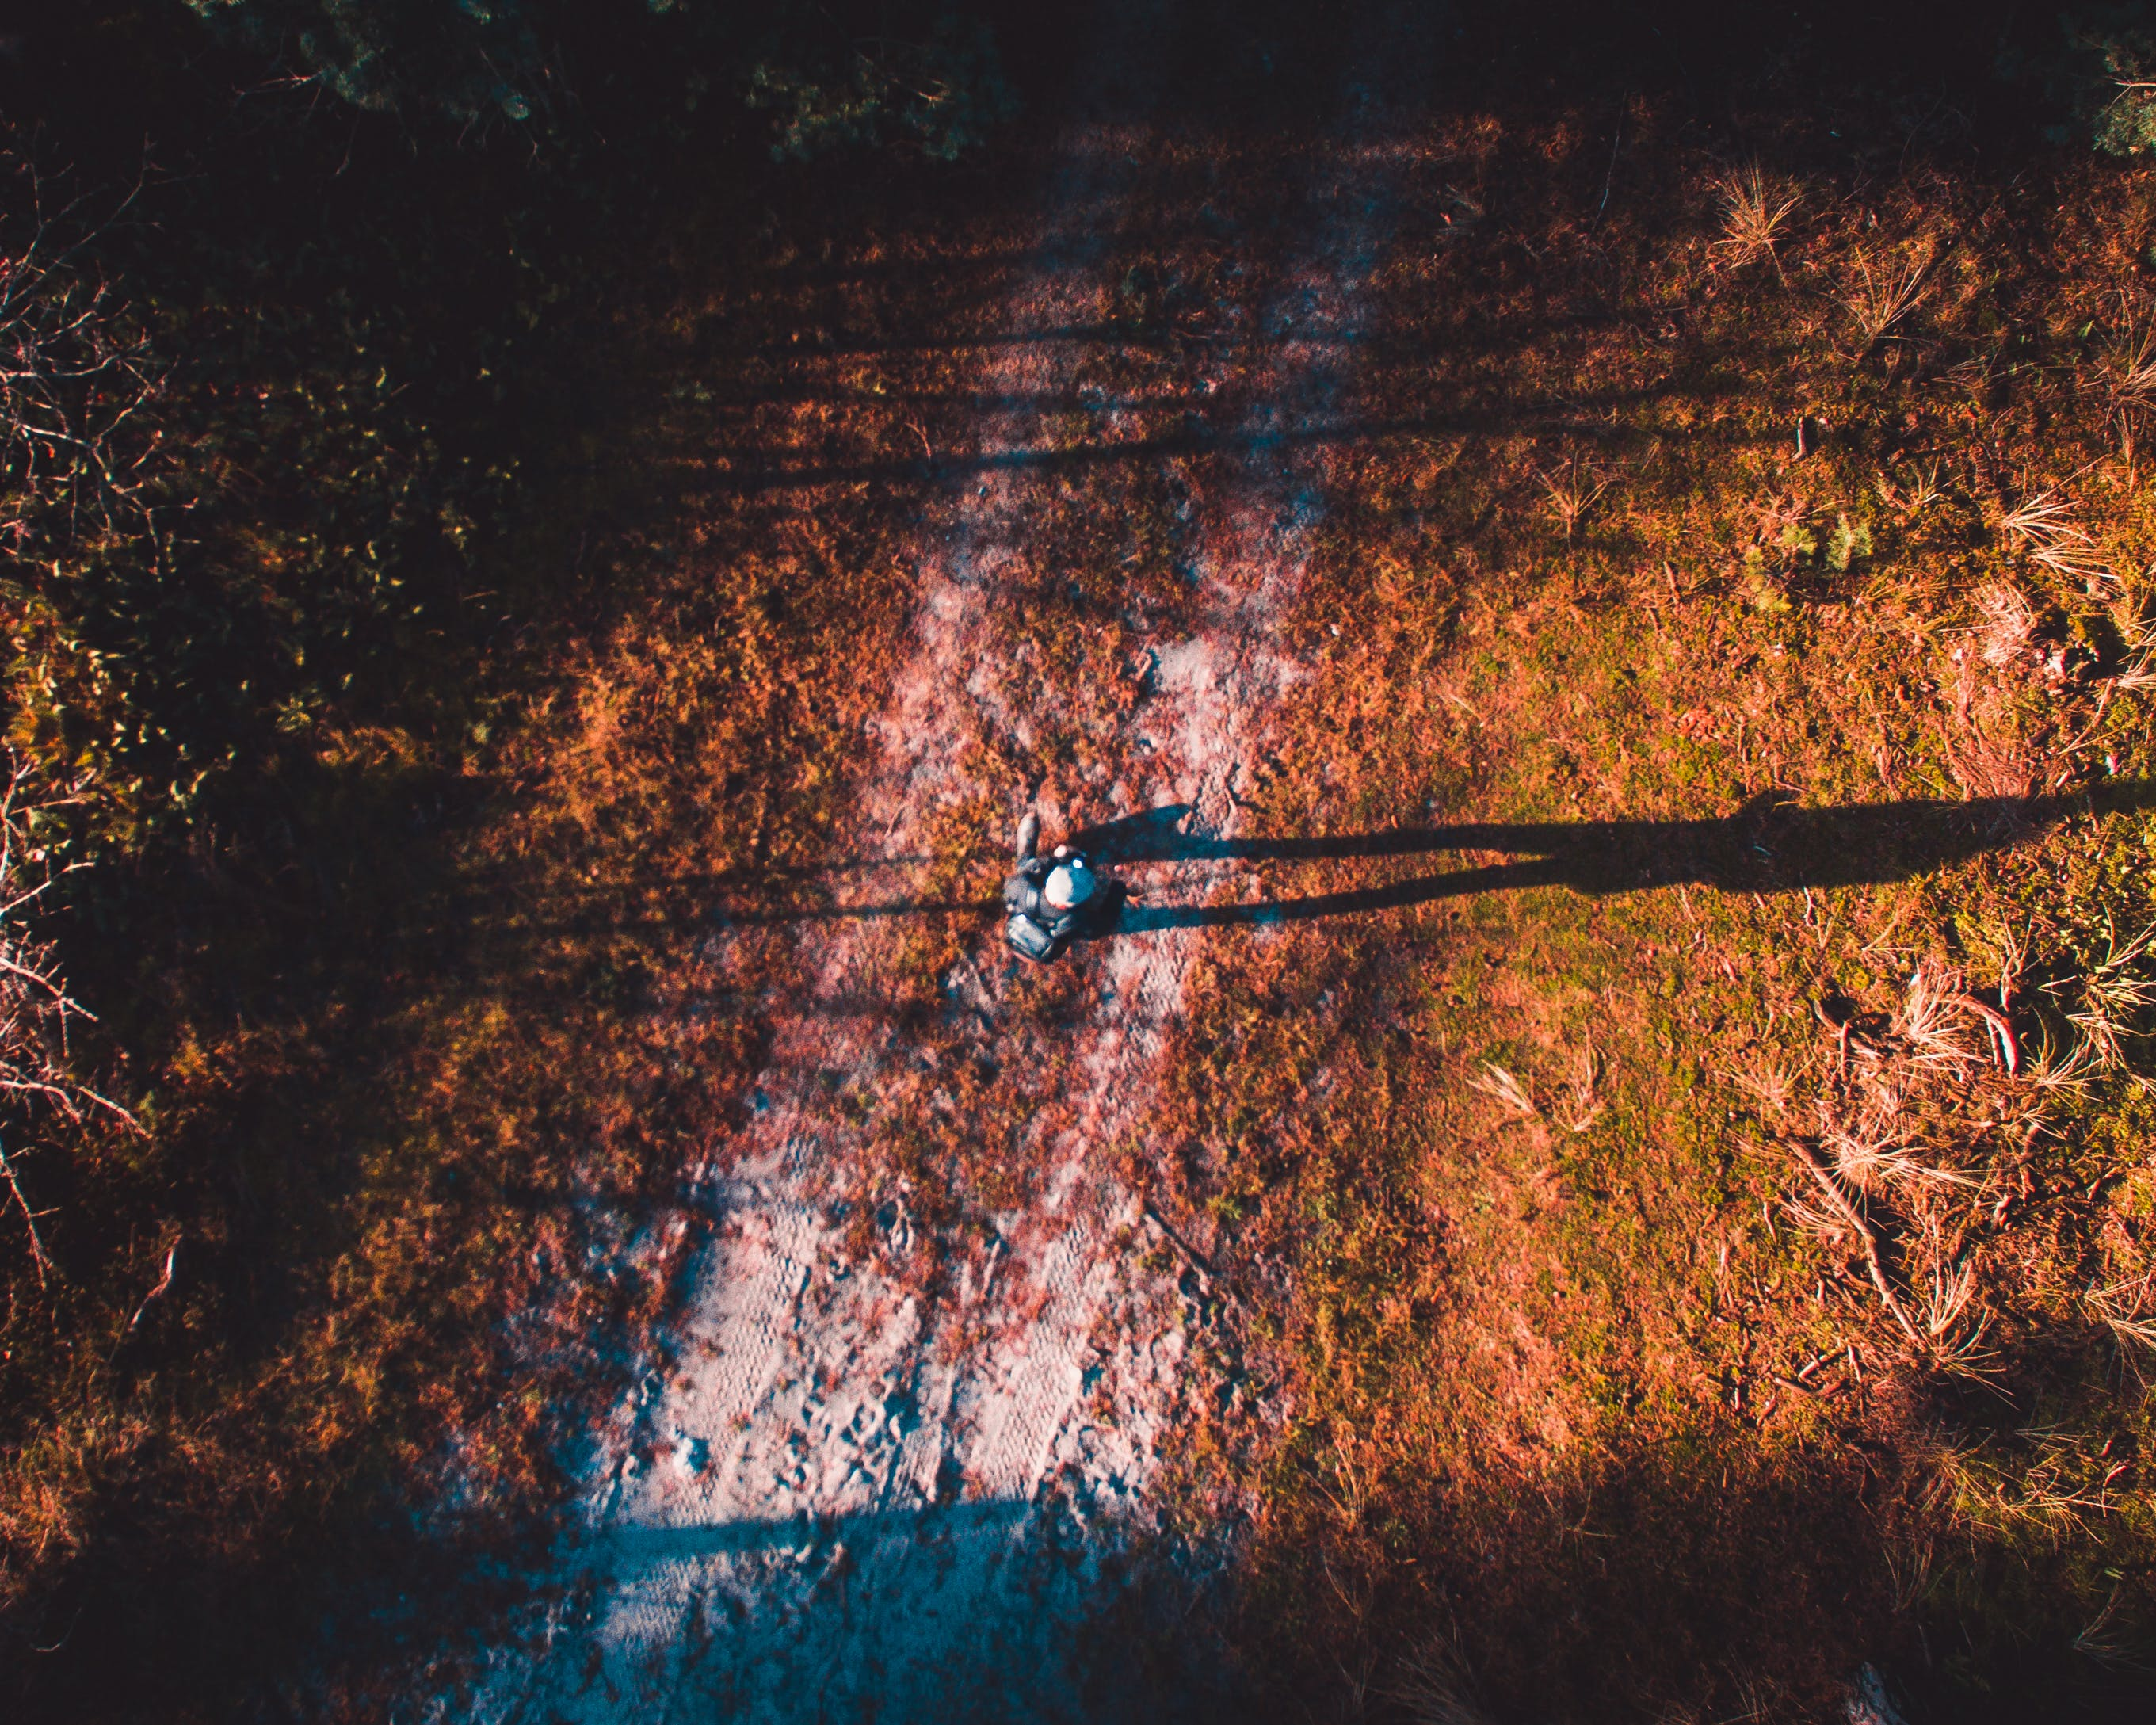 Free stock photo of 2D, dirt road, dirtroad, drone